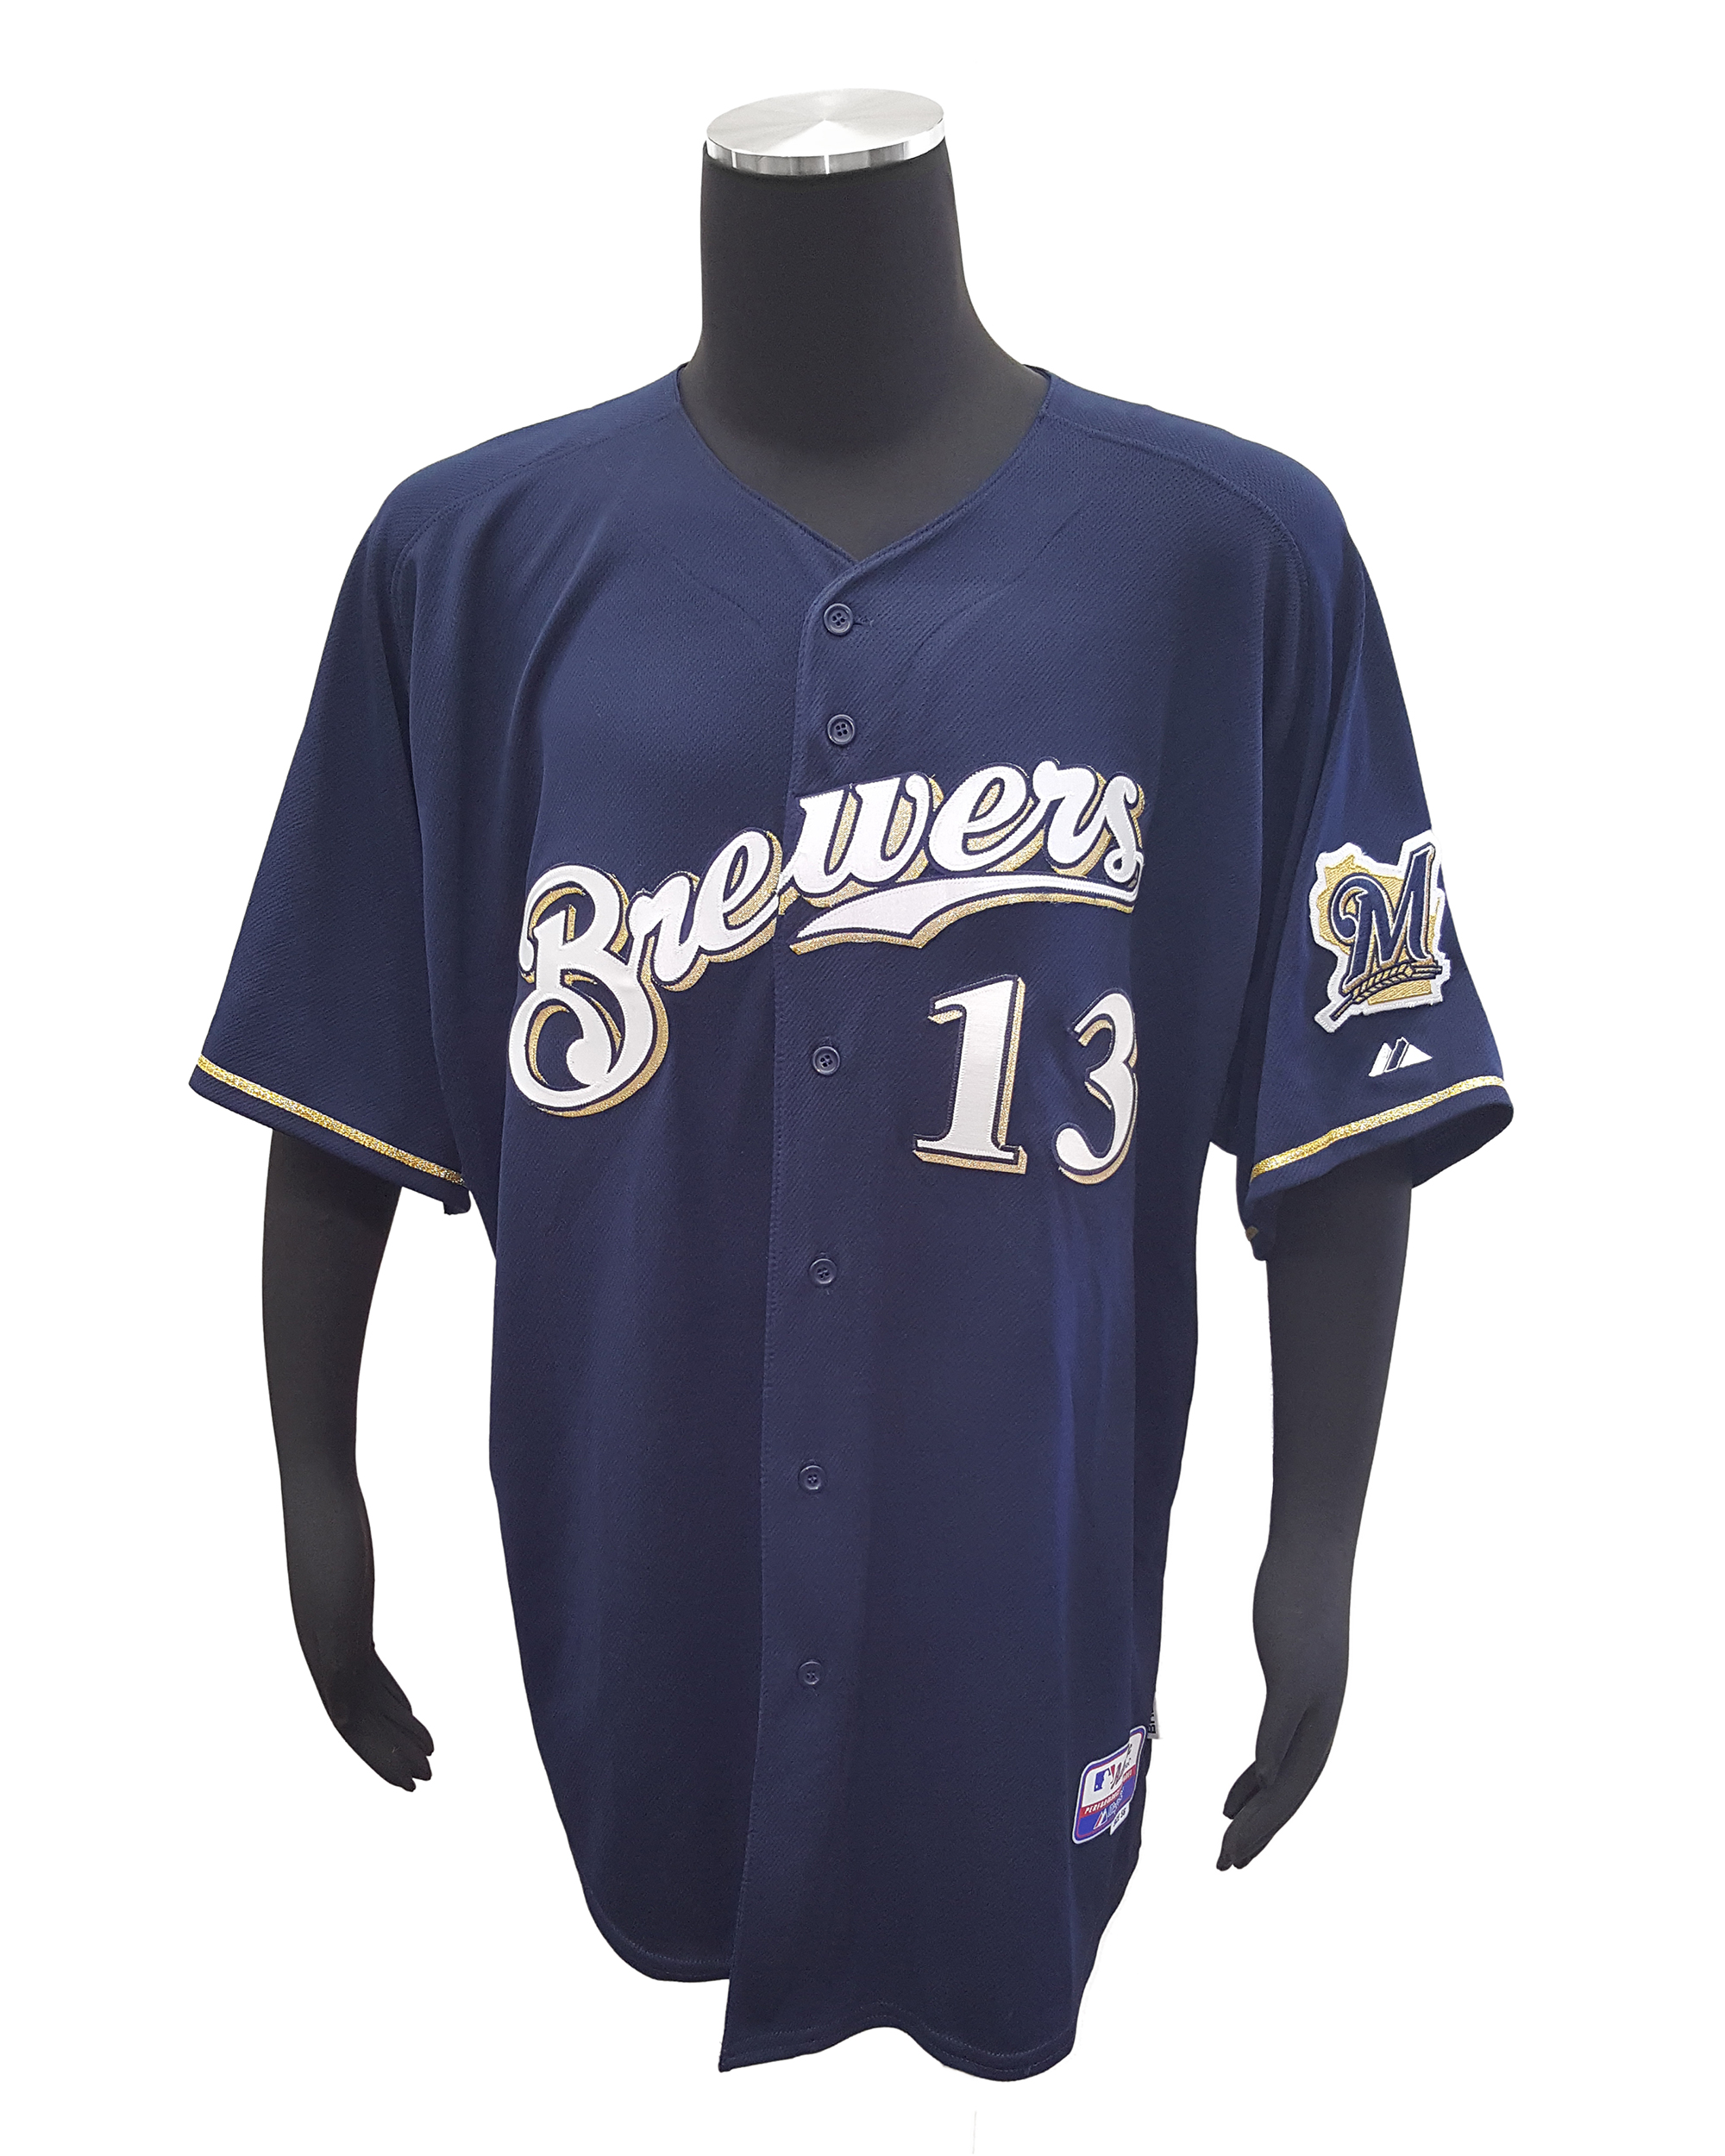 low priced 38b91 2fc7f Details about Majestic Milwaukee Brewers #13 Greinke Jersey (56, Navy)